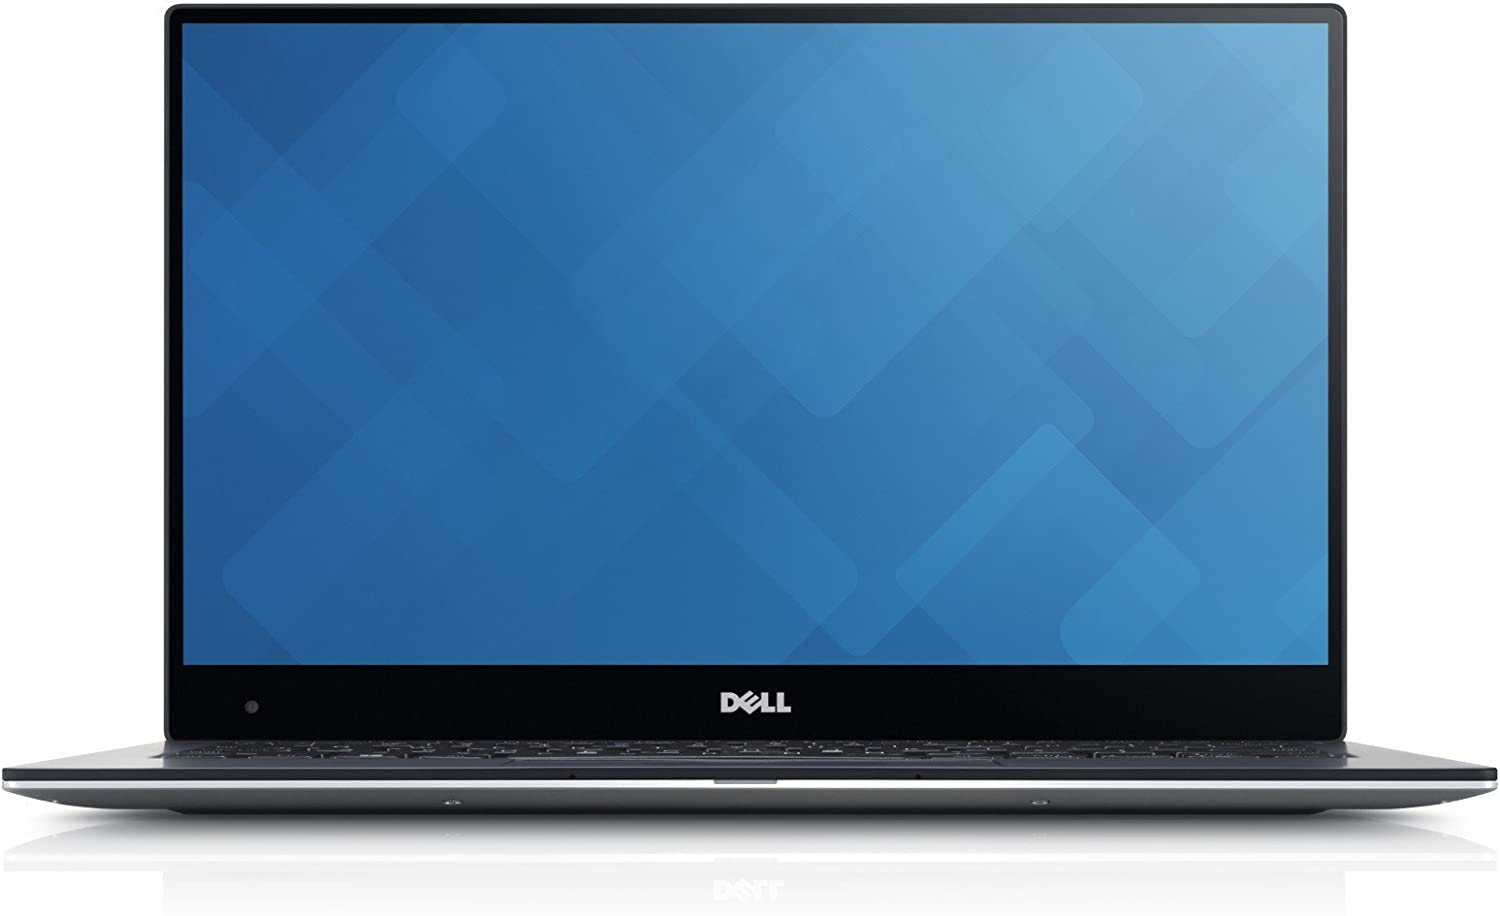 Dell XPS 13 9360 13.3in Laptop QHD+ Touchscreen 7th Gen Intel Core i7-7560U 16GB RAM 1TB NVME SSD Machined Aluminum Display Silver Win 10 Pro (Renewed)